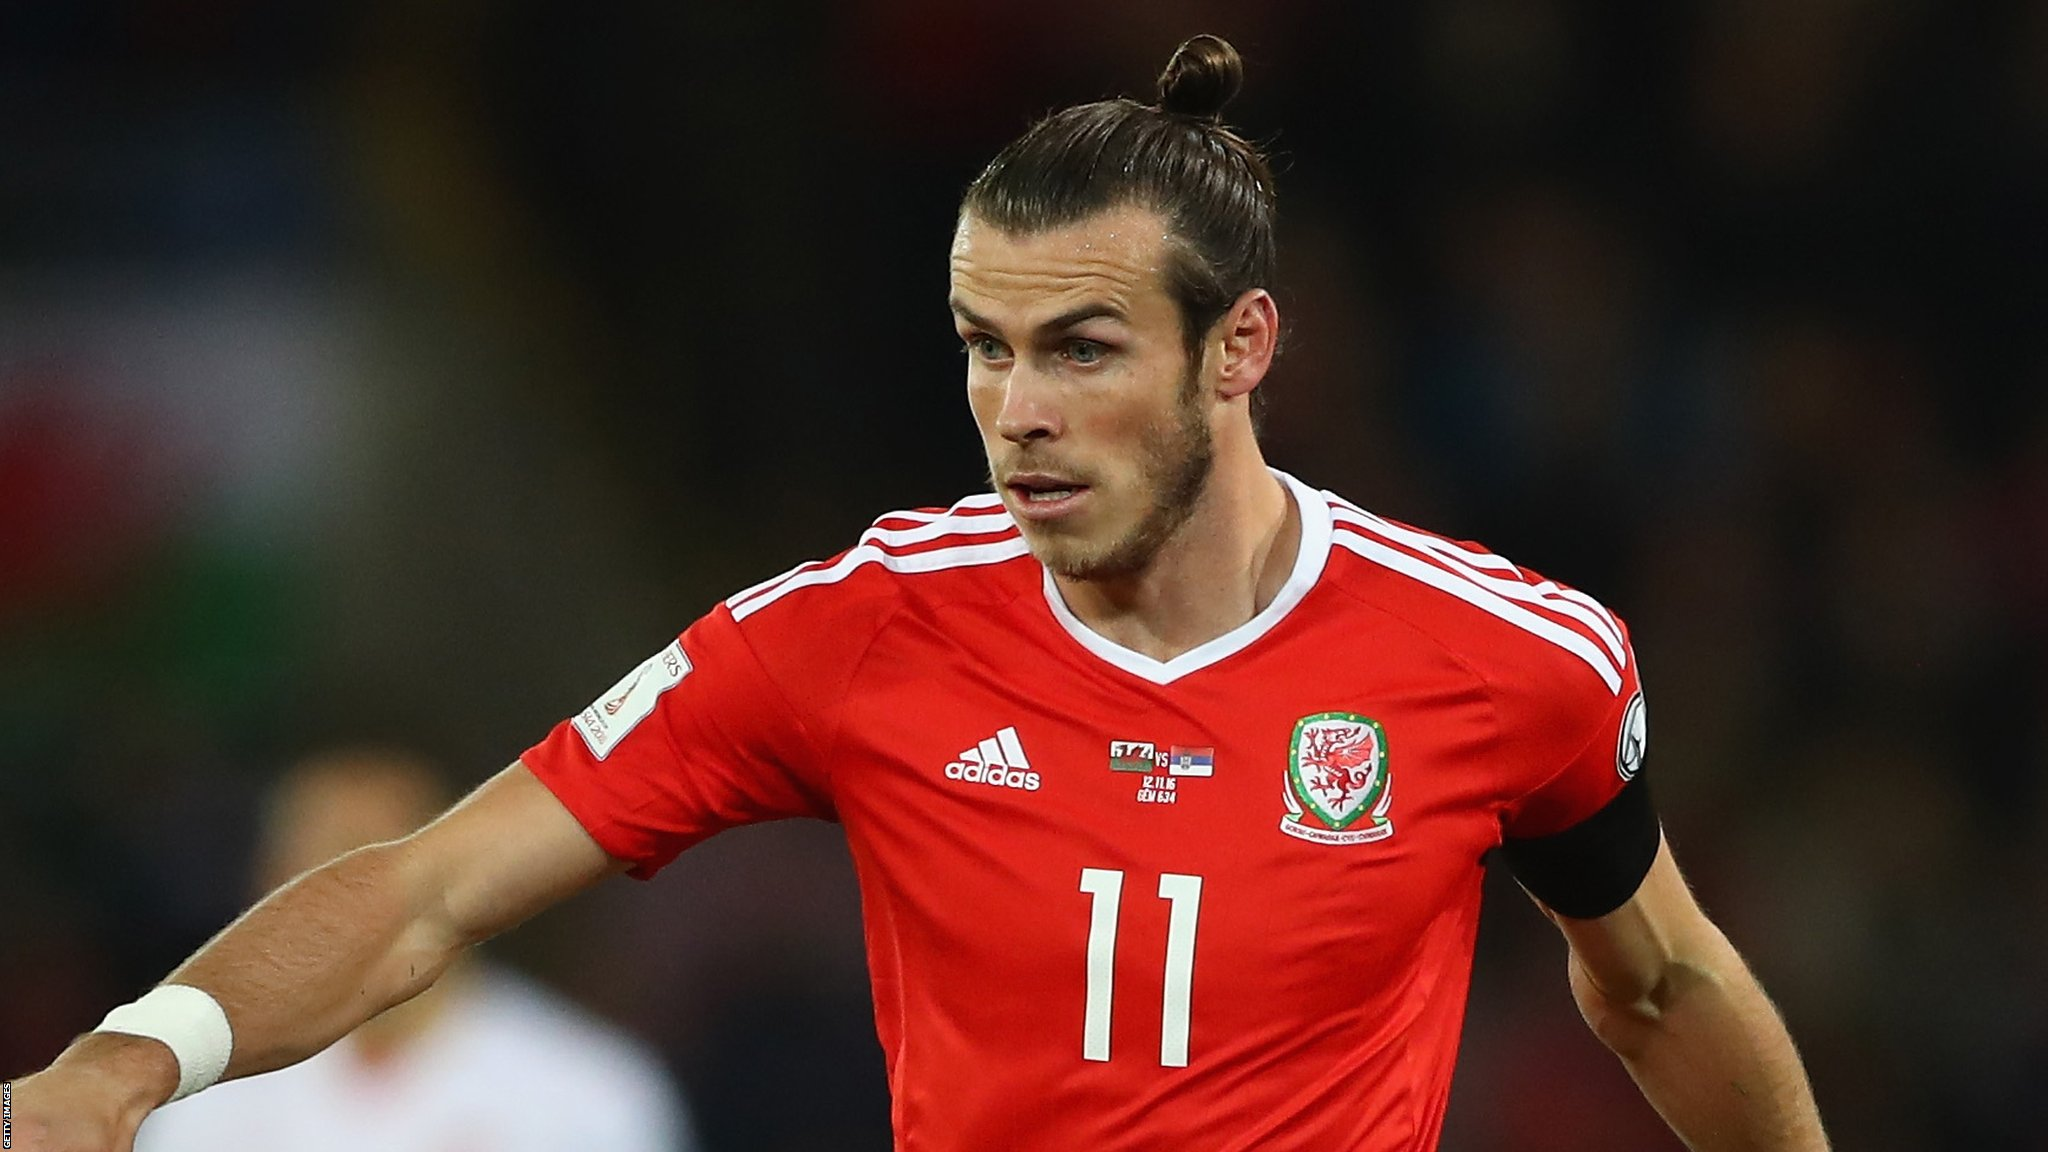 Gareth Bale is recovering well from ankle surgery, says Wales boss Coleman